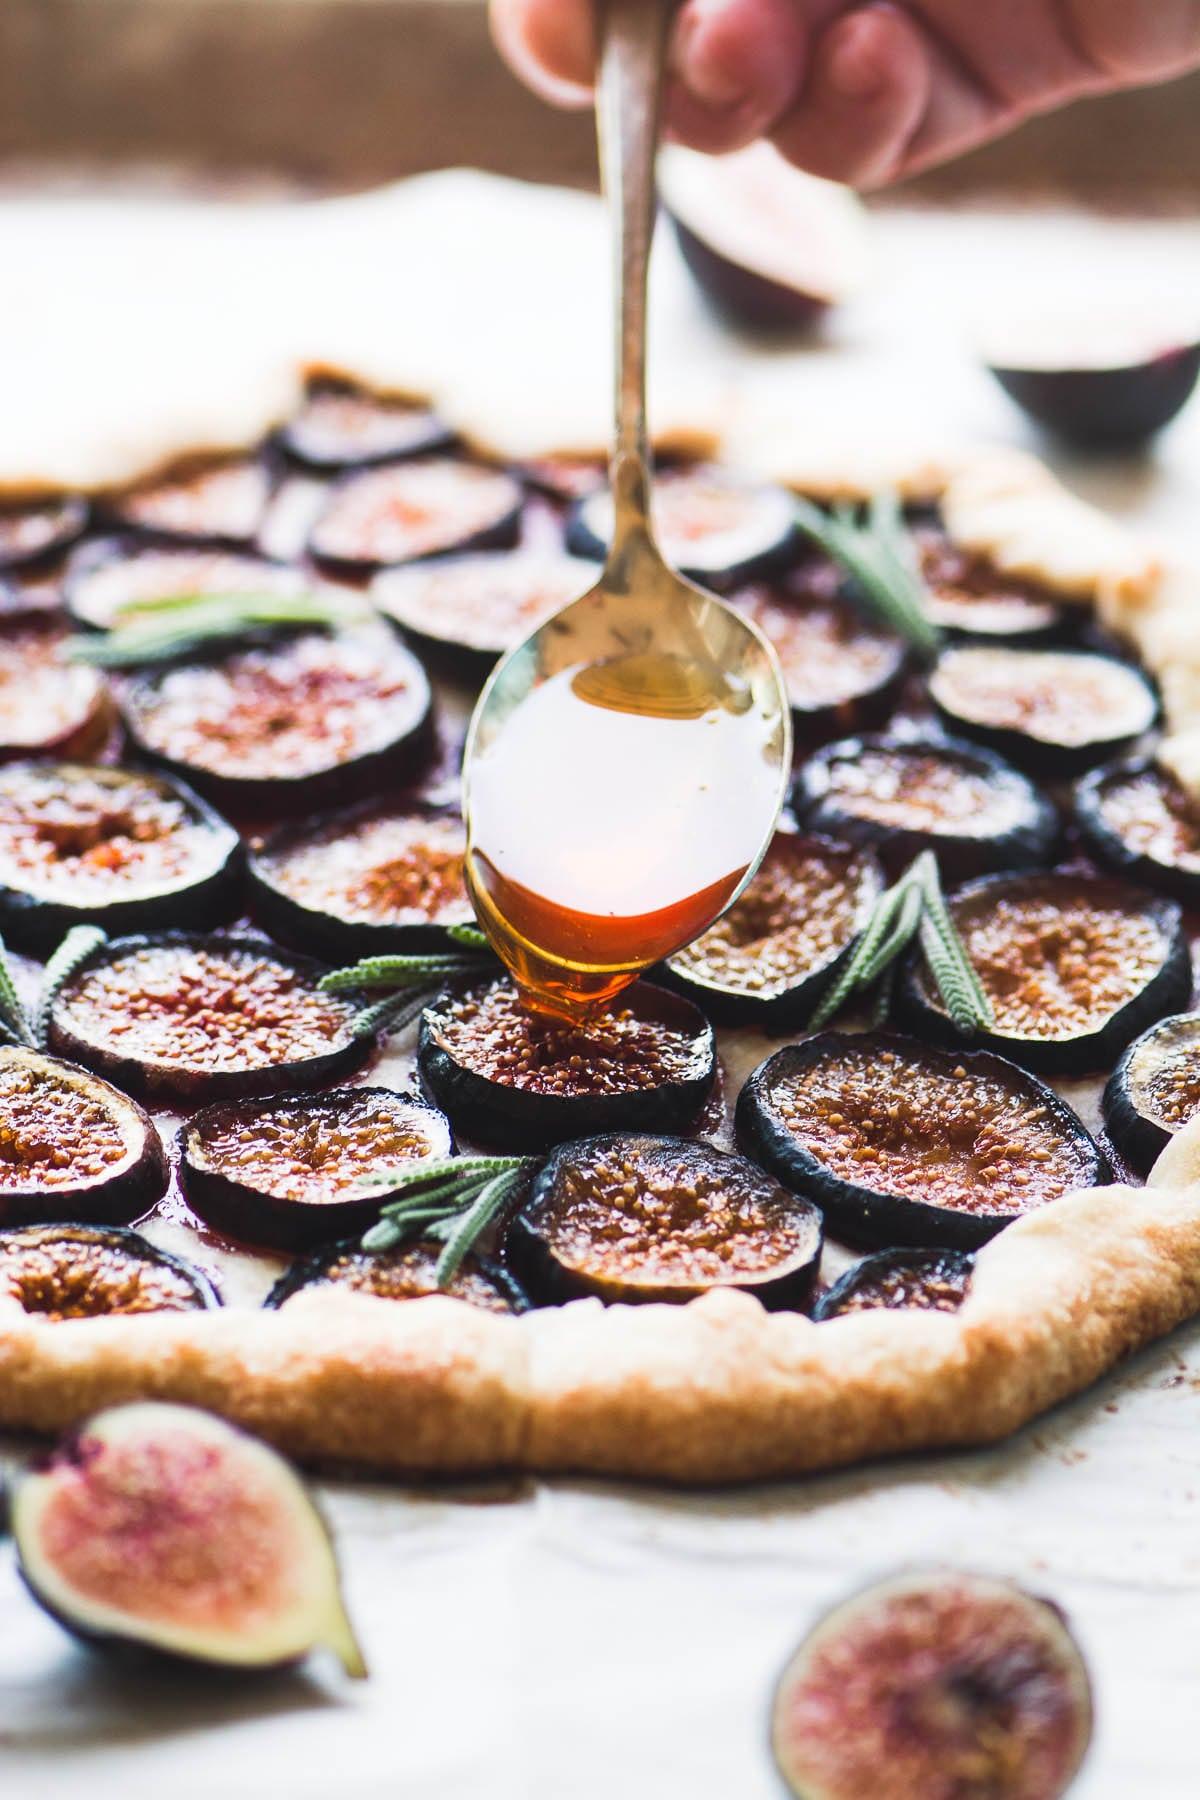 Spooning honey over a fig tart with lavender honey